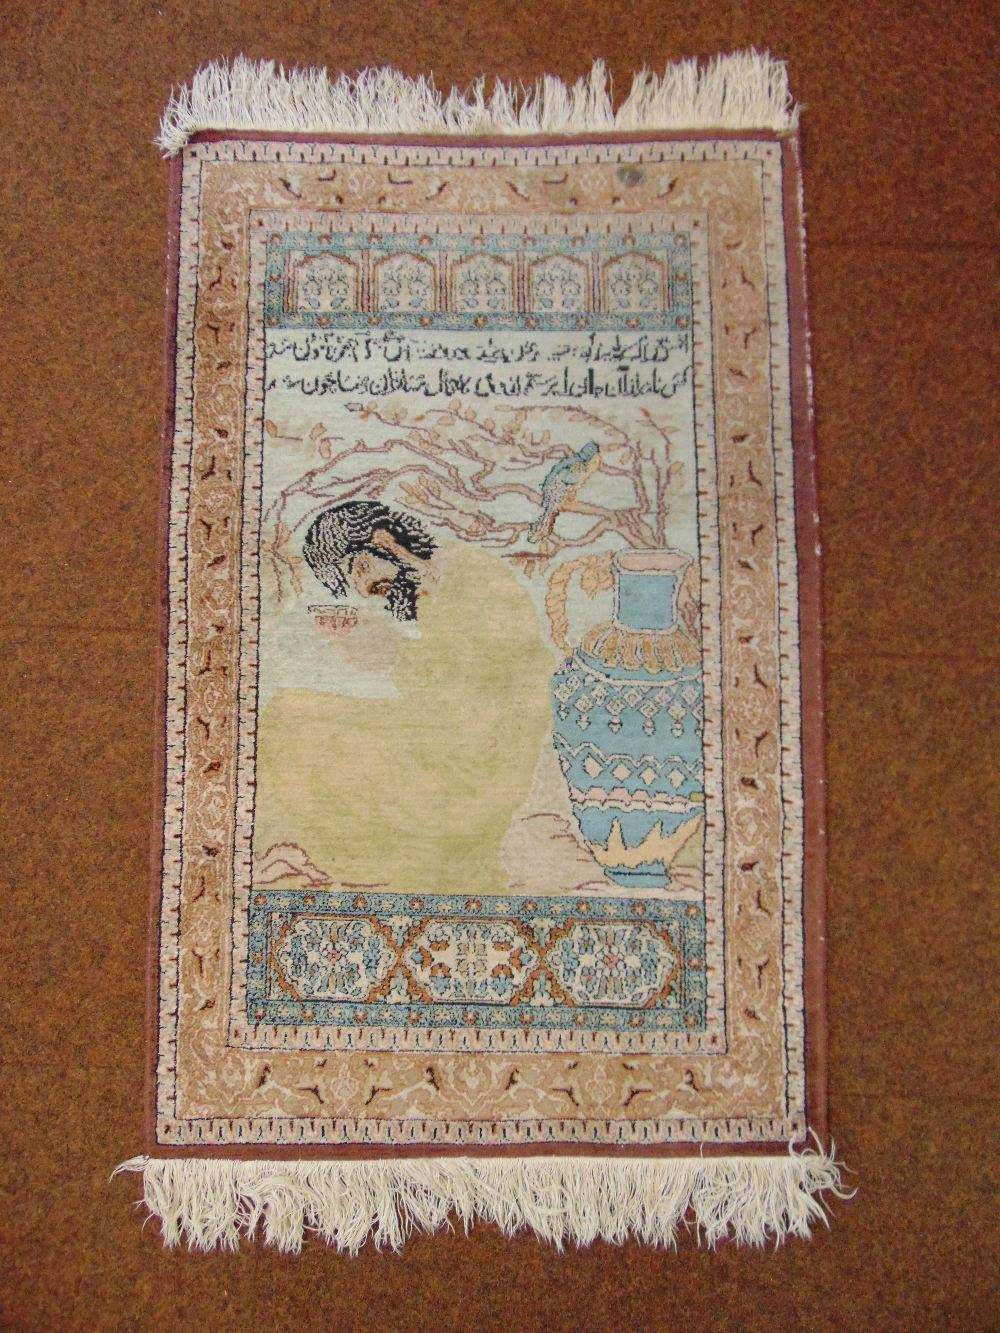 Lot 48 - A Persian carpet featuring a character drinking wine within a brown border with stylised geometric